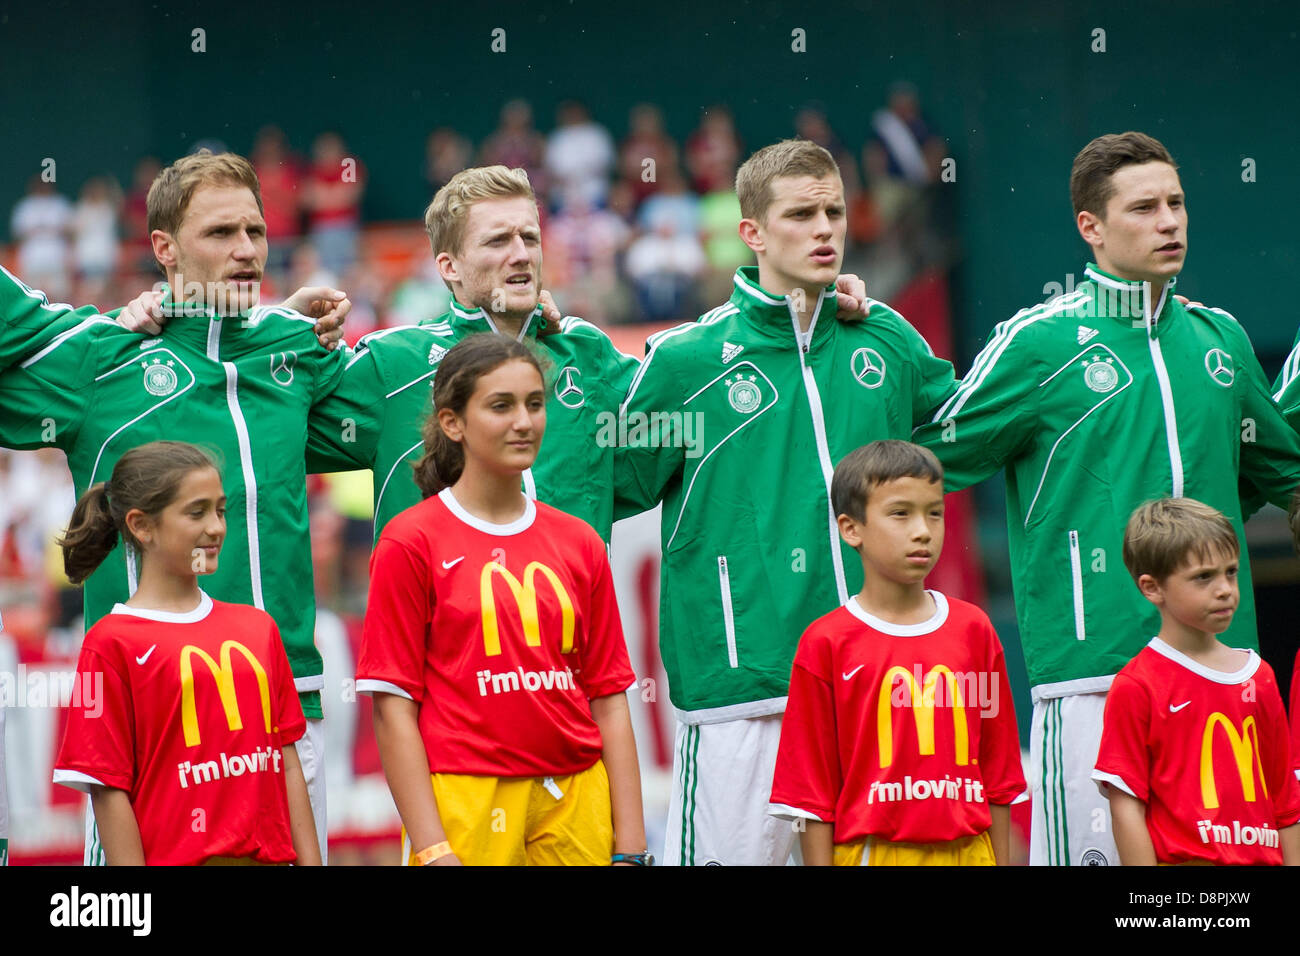 Washington DC, USA. 2nd June 2013. Members of The German National Men's team sing the national anthem during - Stock Image